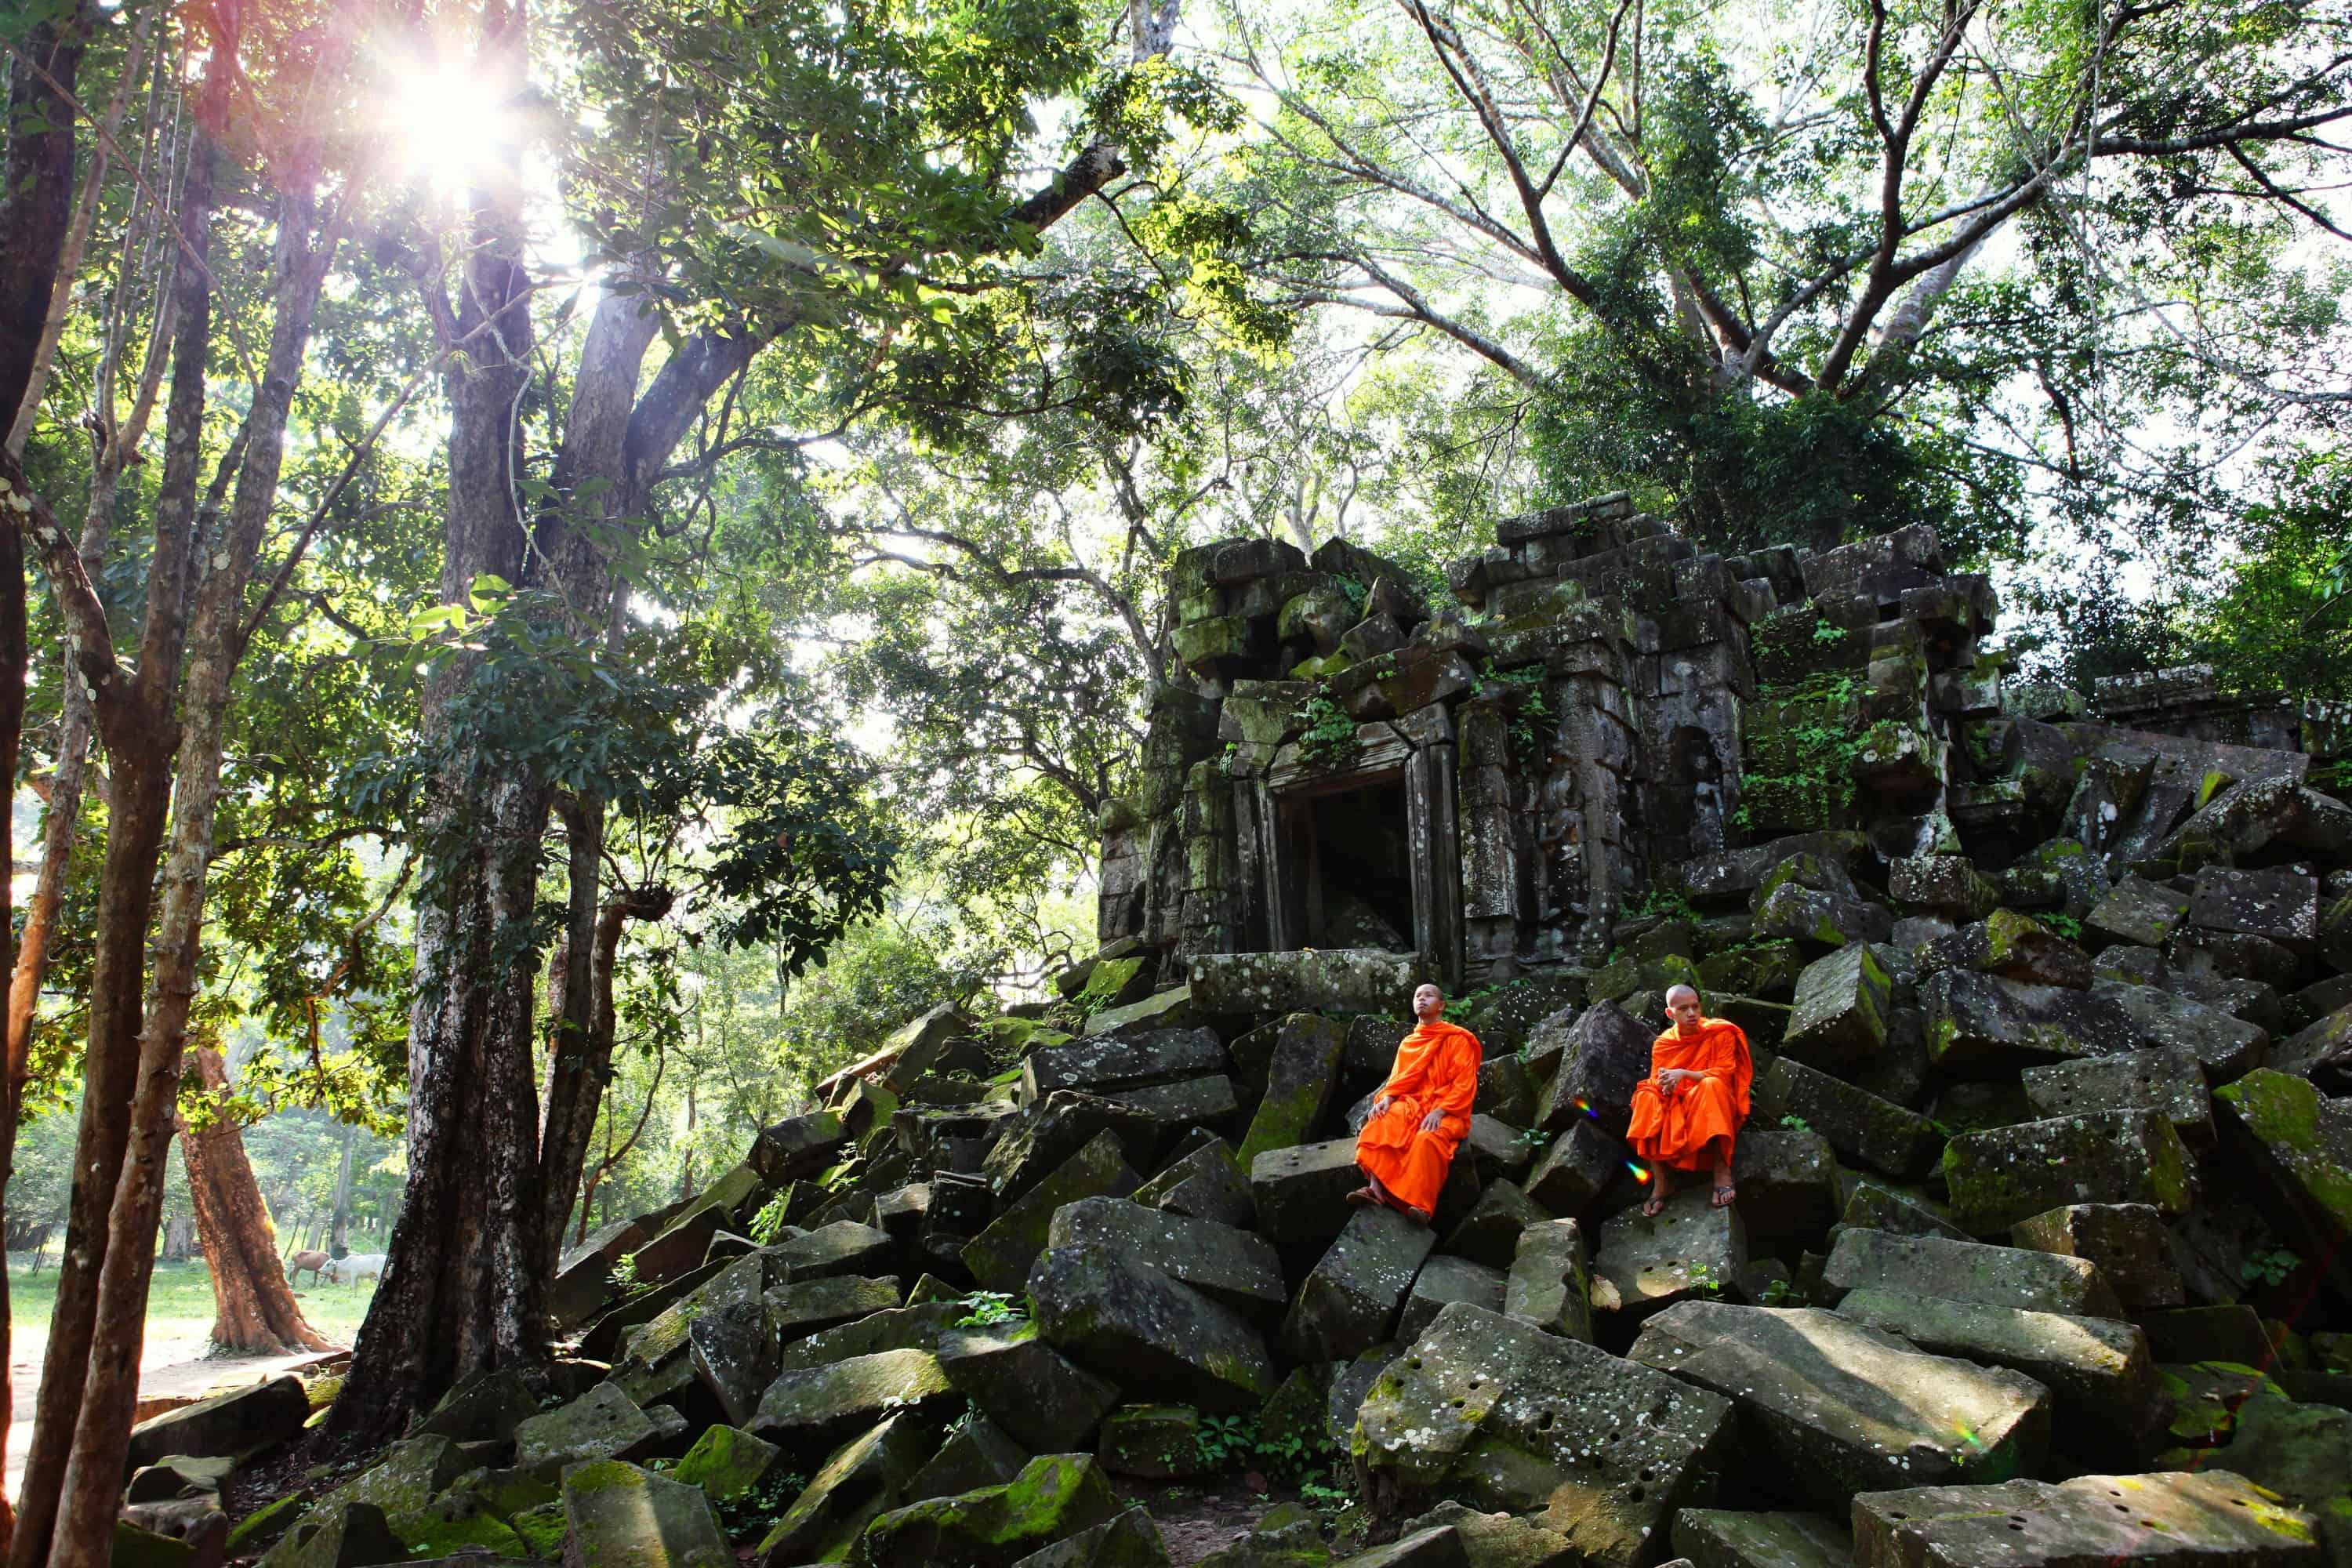 Orange robed Monks sitting on the stones in the ruins of the Beng Melea temple